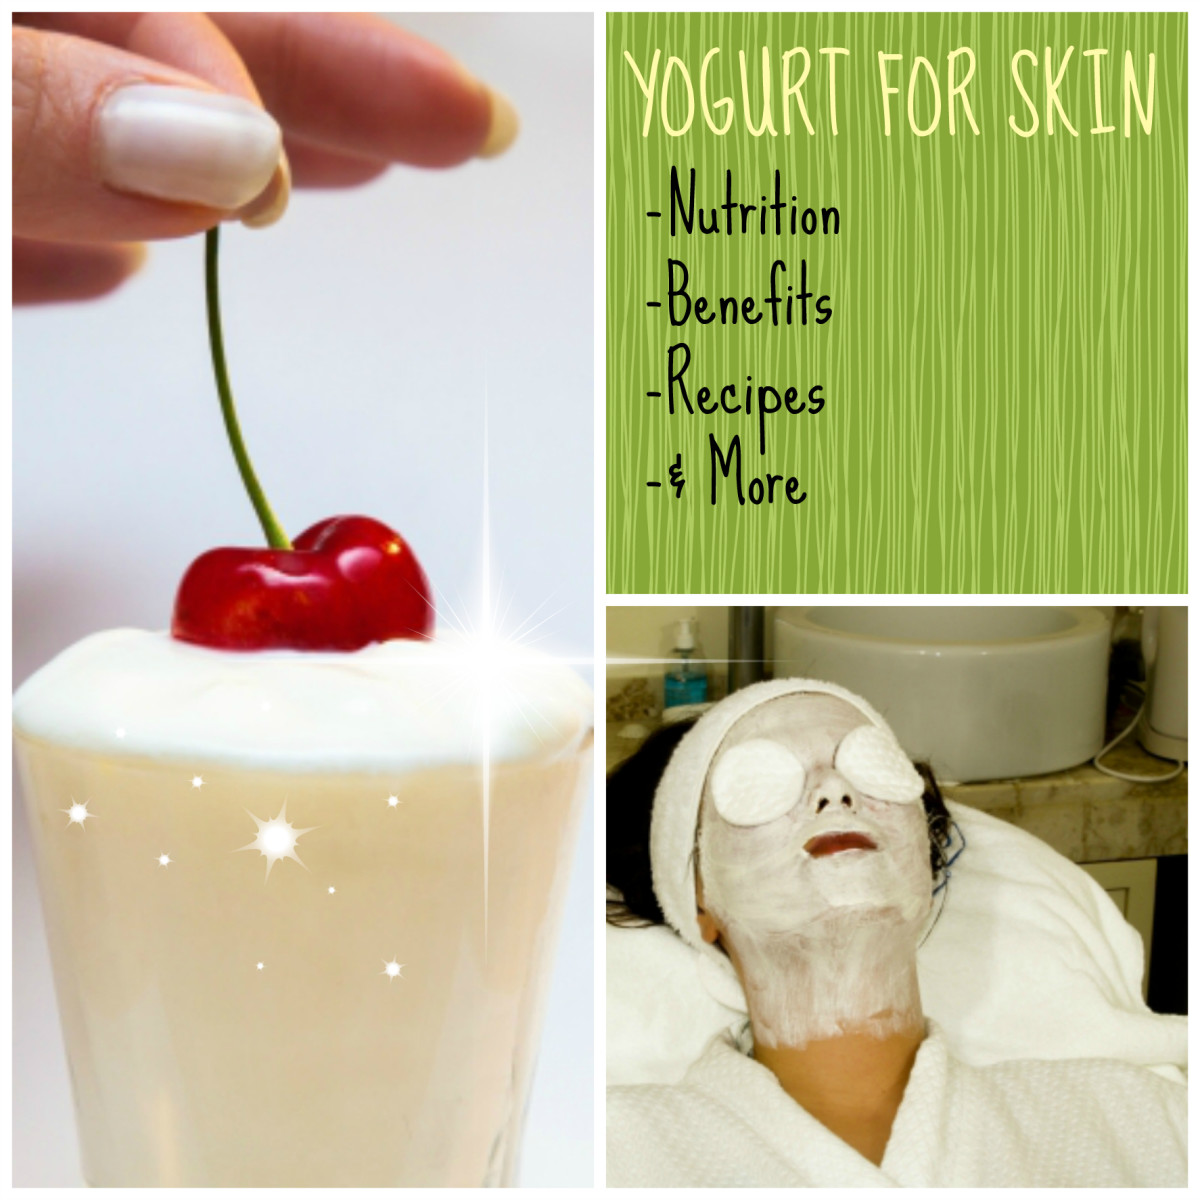 Yogurt can be great for the skin.